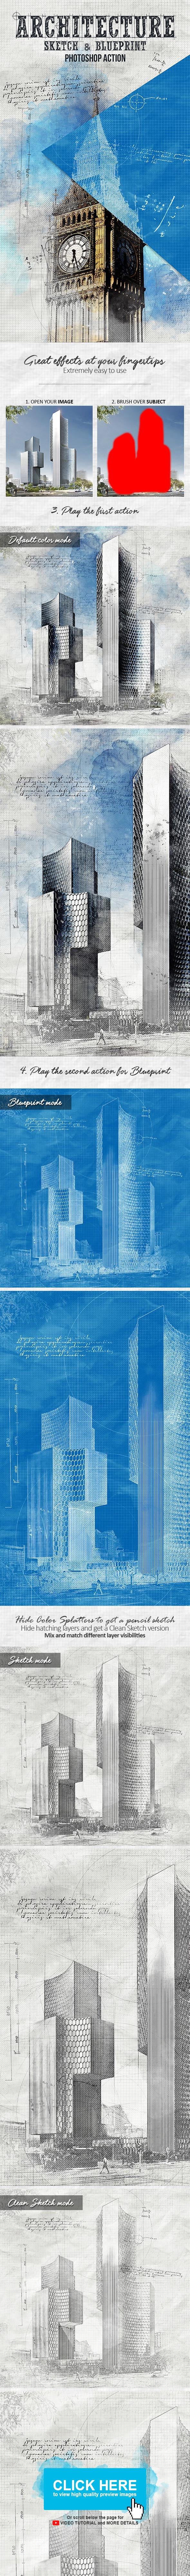 Architecture Sketch and Blueprint Photoshop Action - Photo Effects Actions